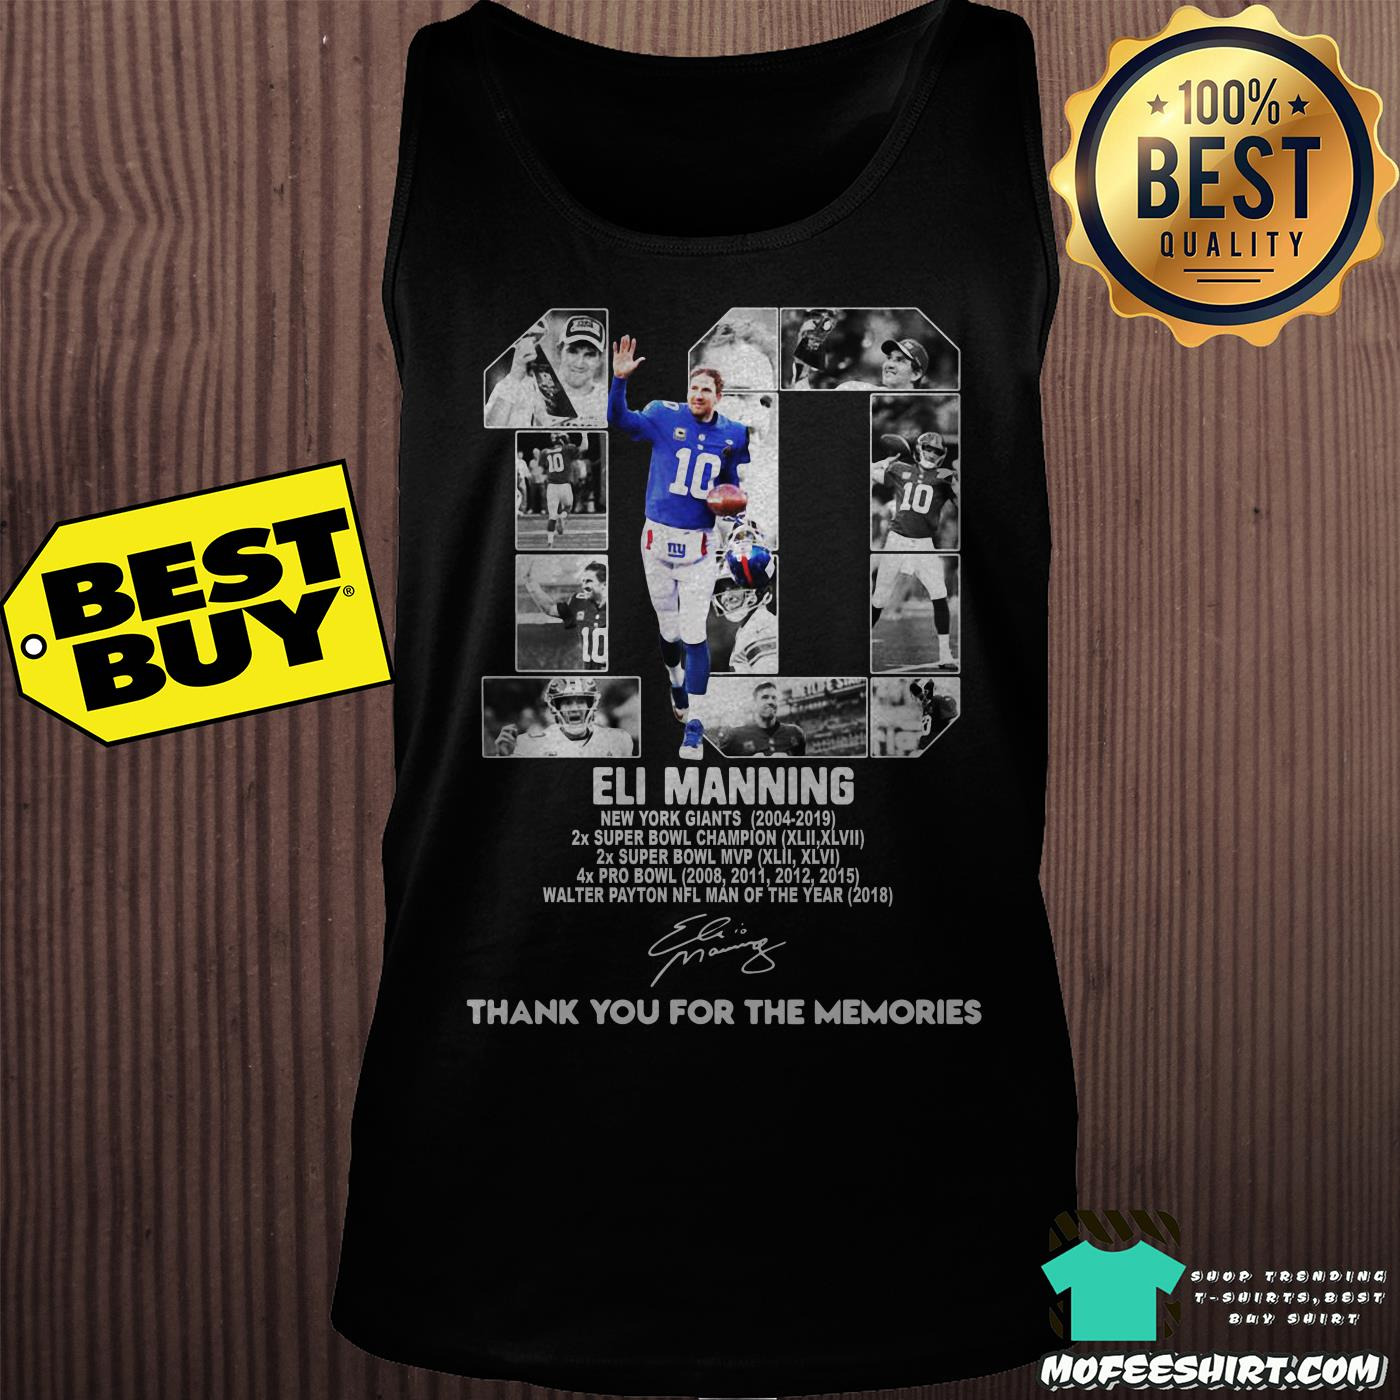 10 eli manning new york giants 2004 2019 thank you for the memories signatures tank top - 10 Eli Manning New York Giants 2004-2019 thank you for the memories signatures shirt